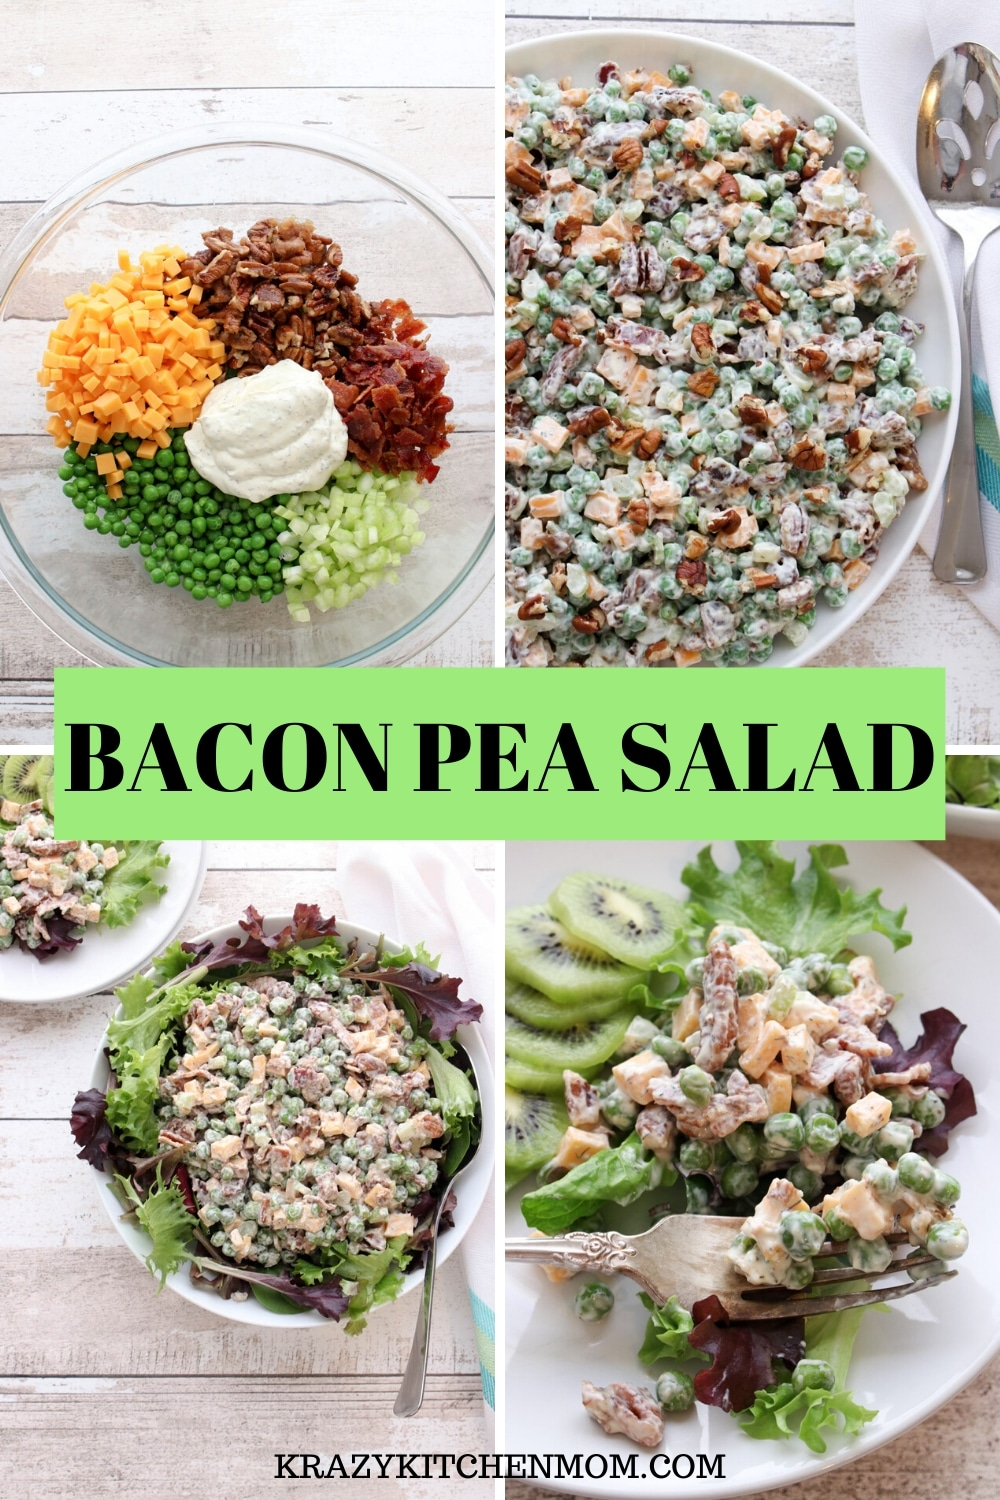 This easy Bacon Easy Pea Salad is loaded with veggies, peas, and bacon. It's the perfect salad or side dish with any meal. via @krazykitchenmom